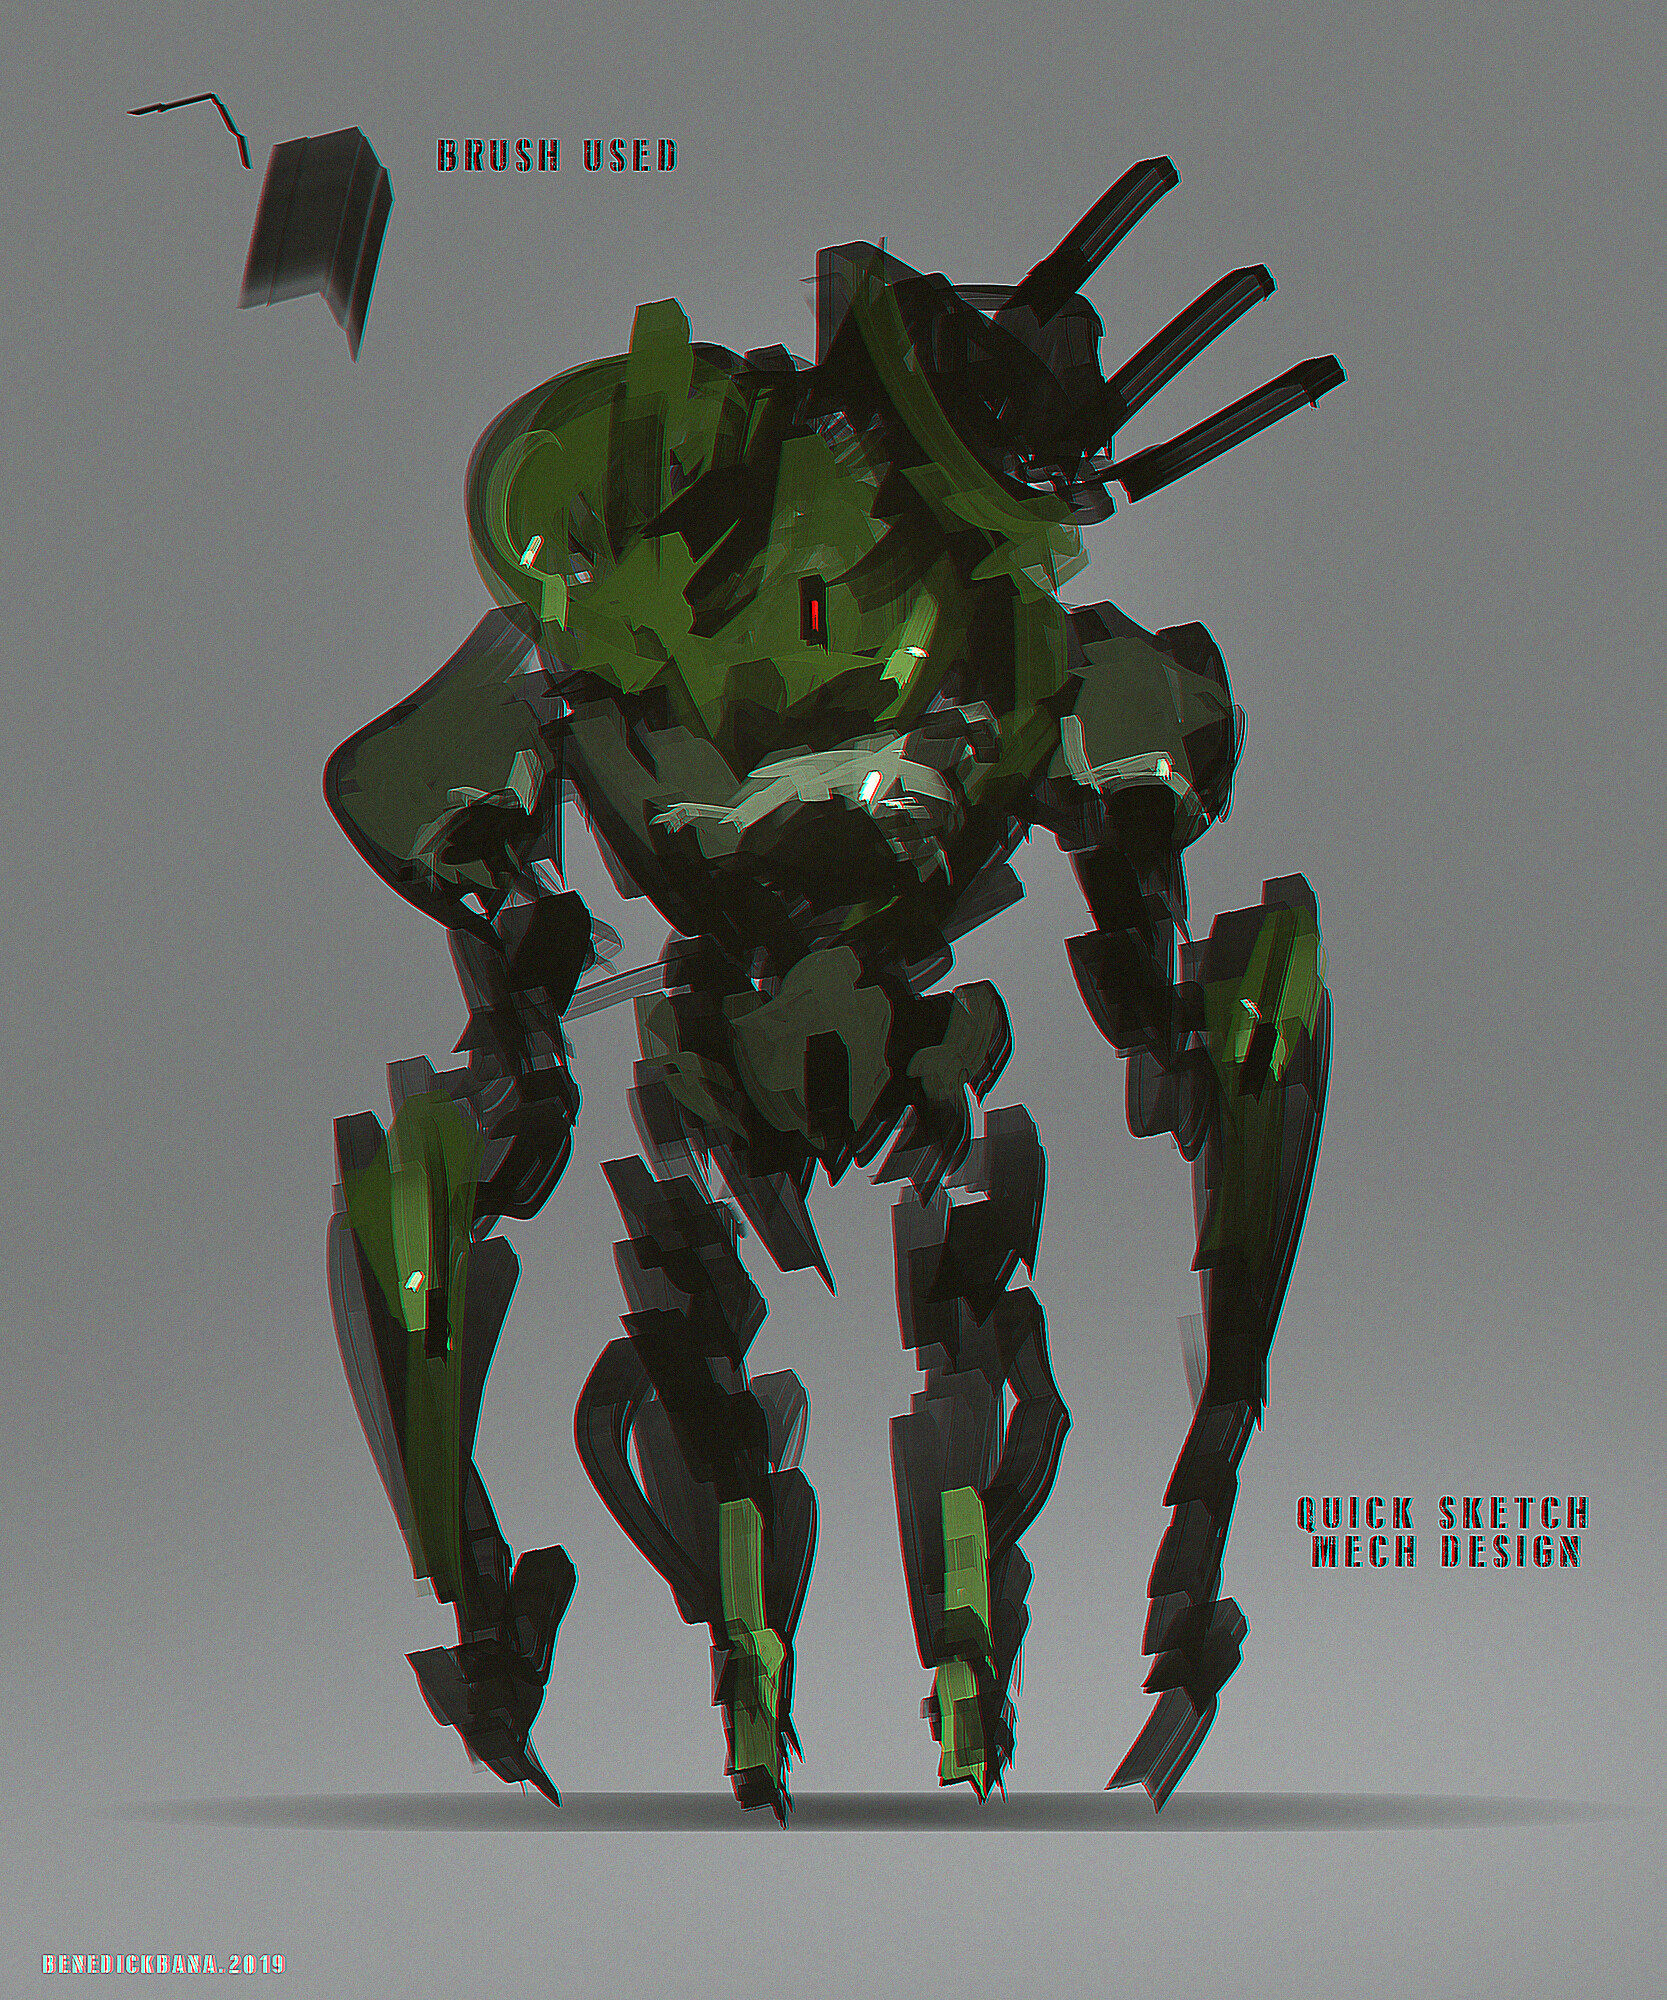 Quick Sketch - Mech Design (one of the brushes i used, available for download)